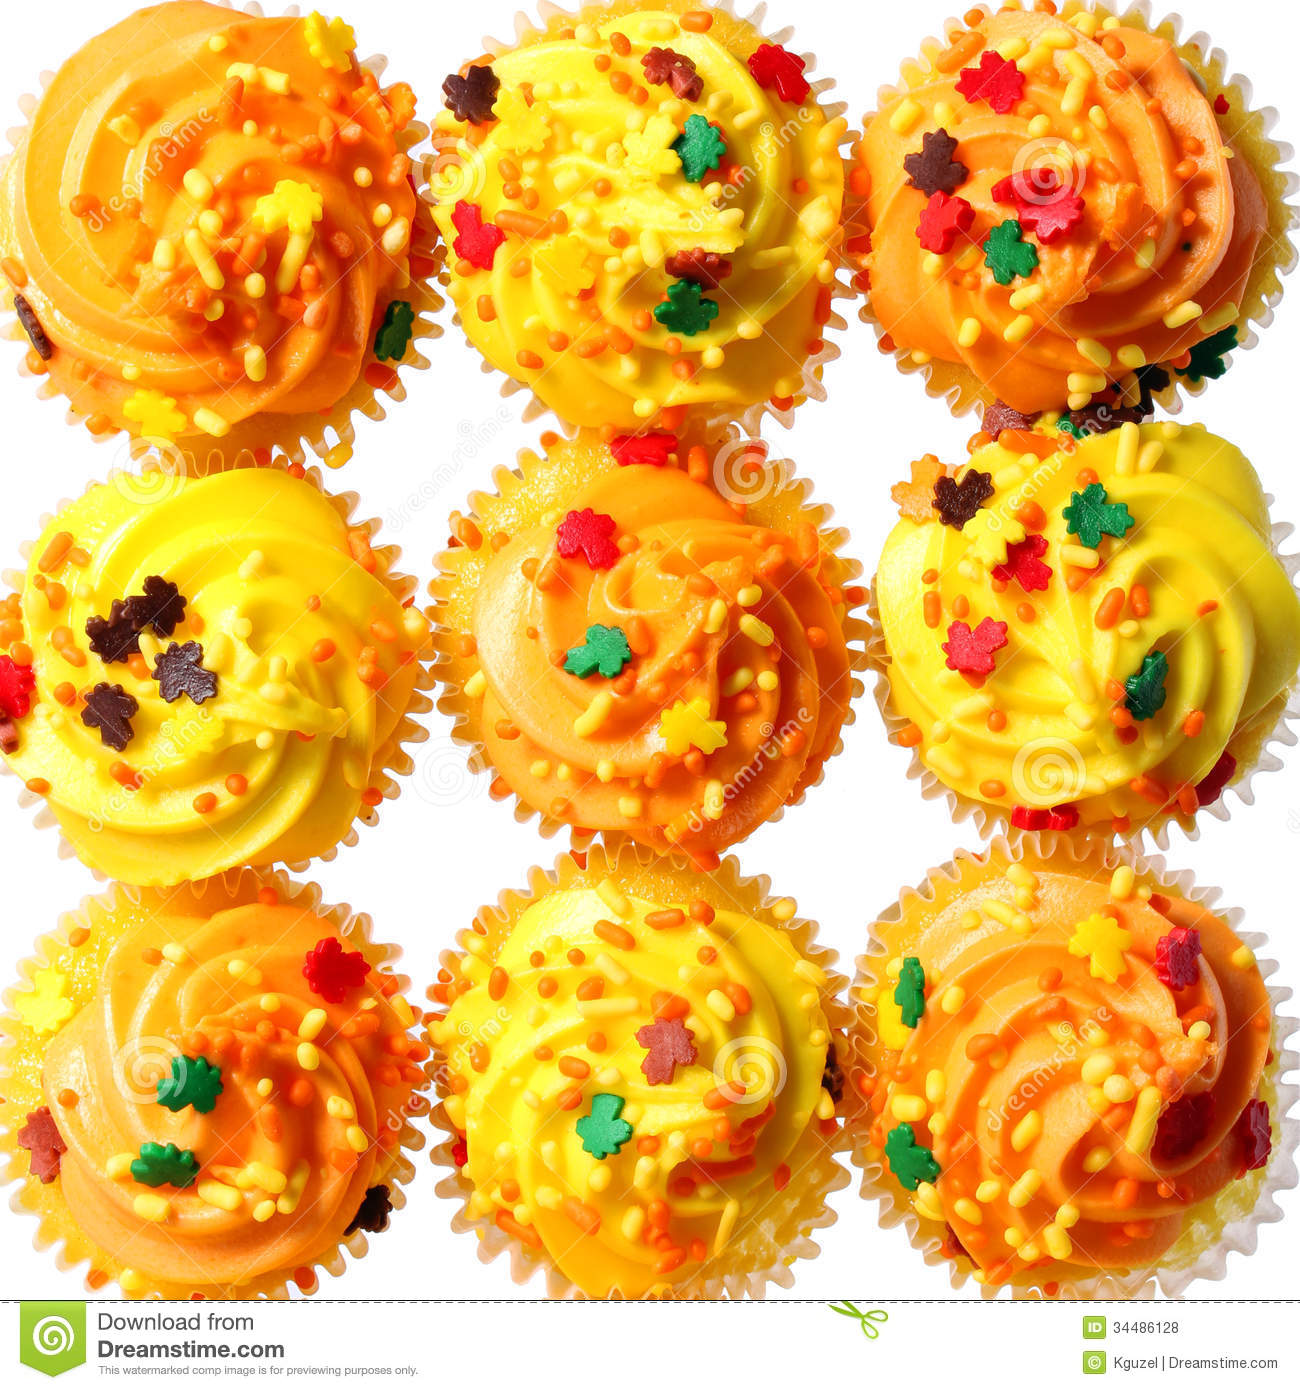 Cupcakes With Yellow And Orange Frosting And Colored